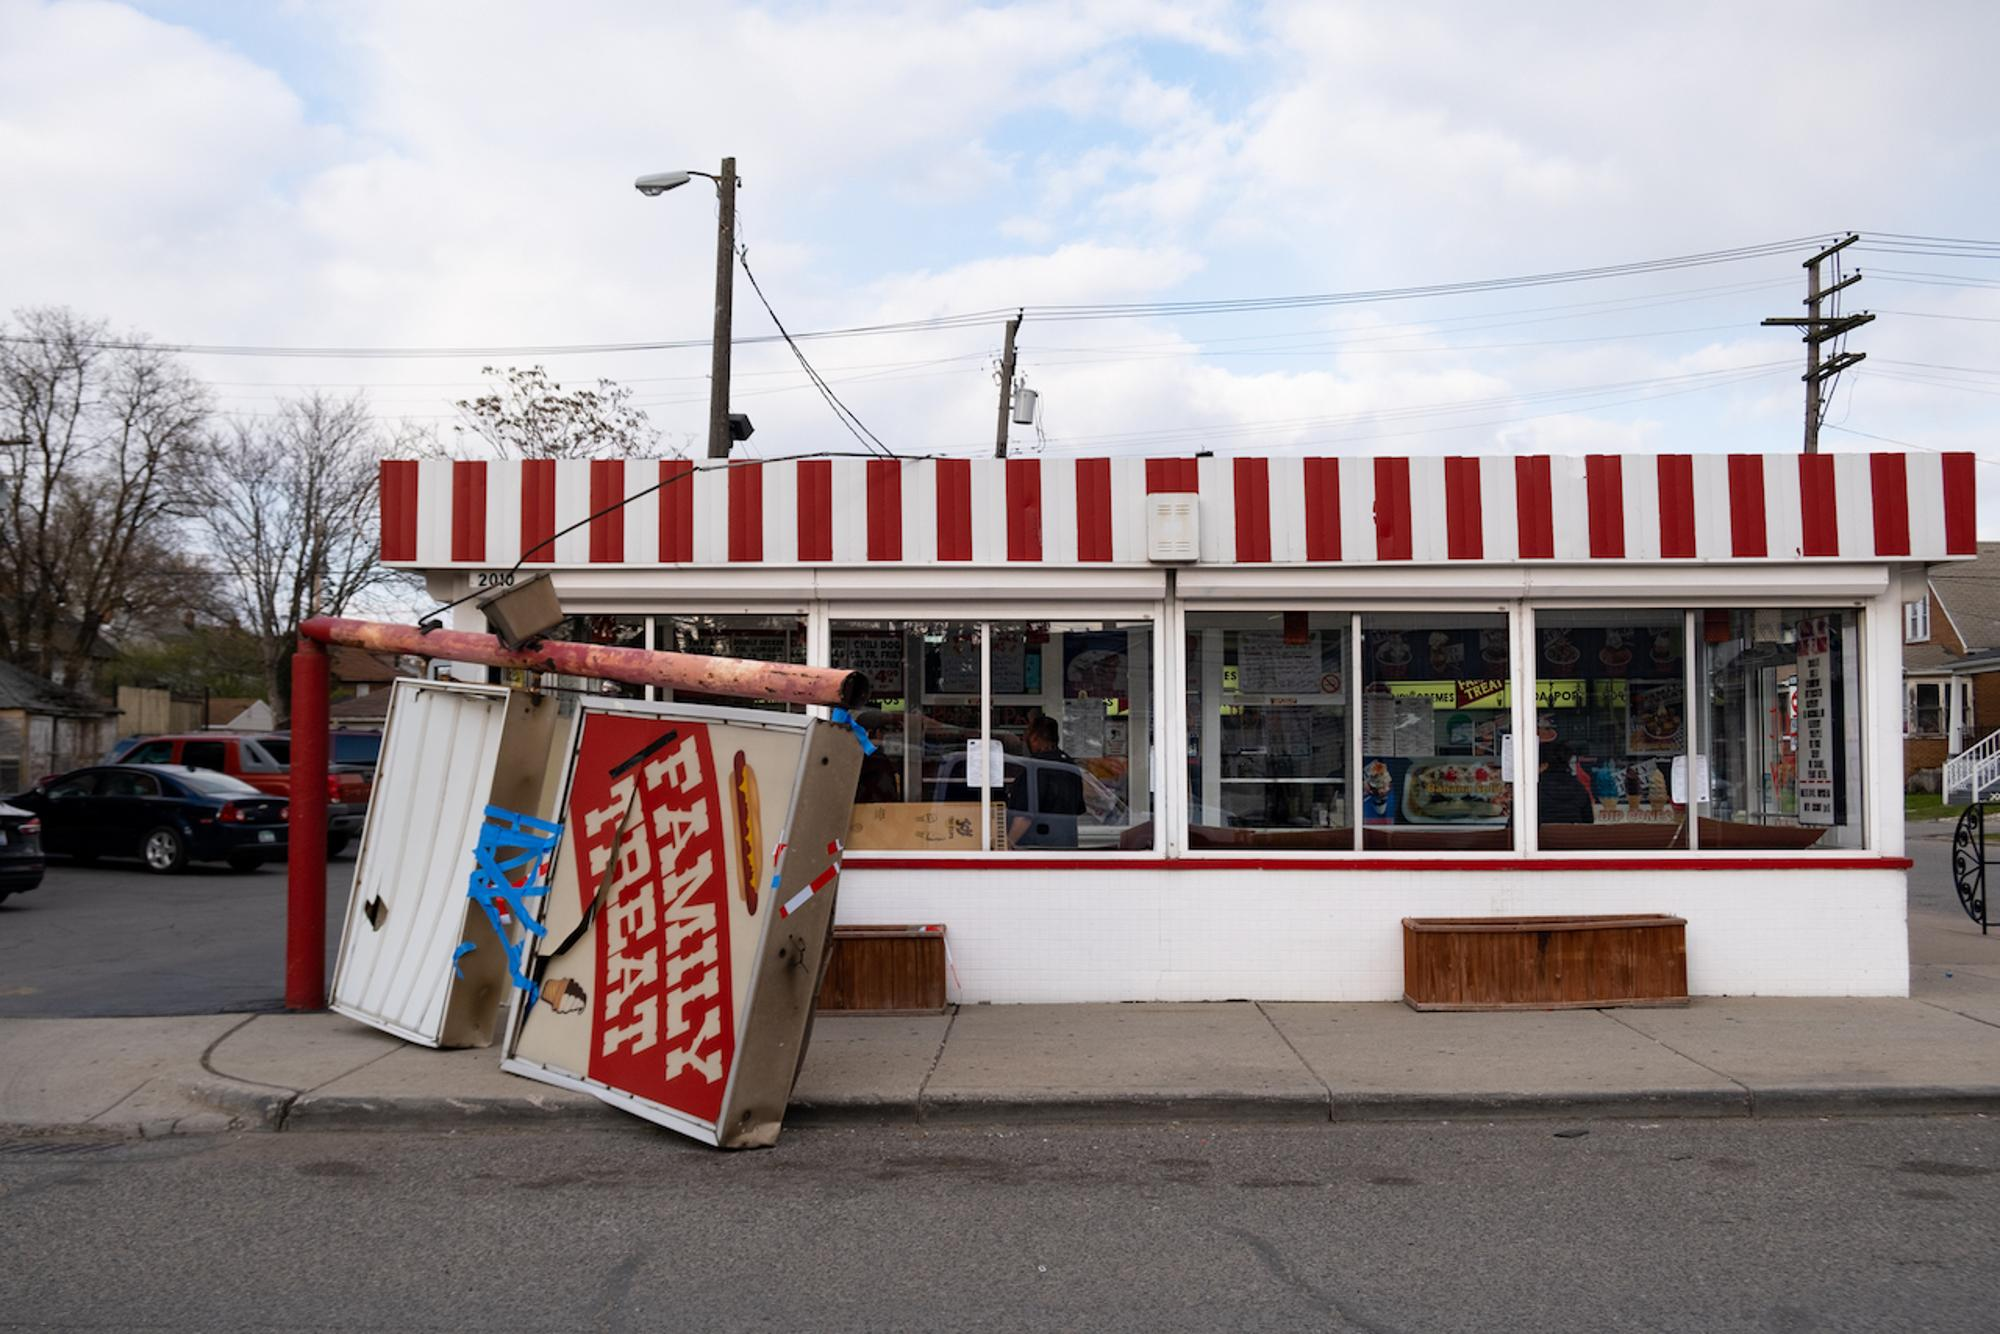 The Family Treat sign was knocked over in high winds during the local favorite ice parlor's annual opening today.Taken by Erik Paul Howard for WDET